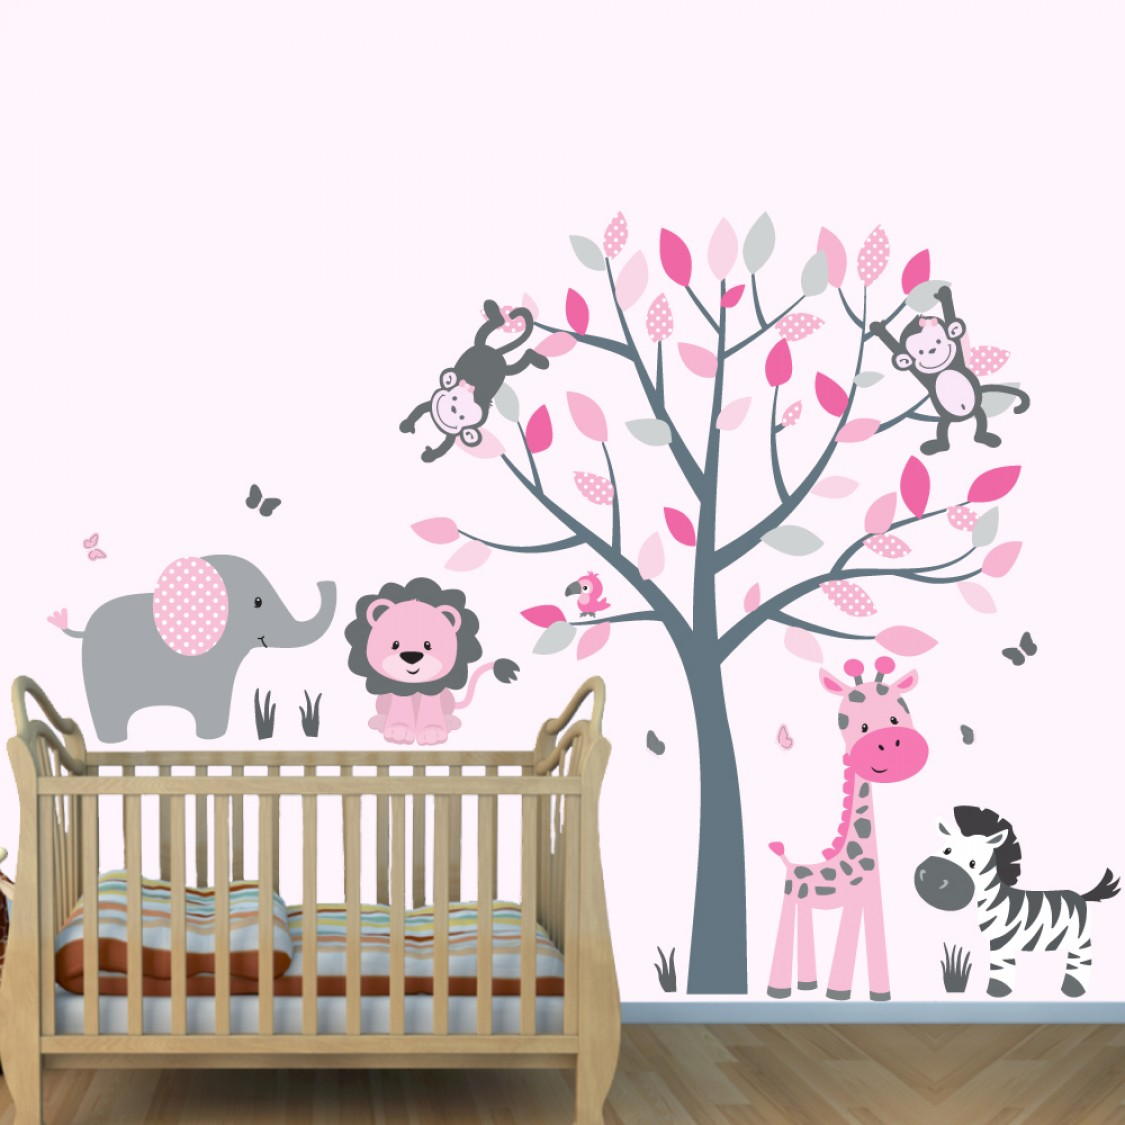 Gray Orange Wall Decals Jungle With Elephant Wall Art For Boys Rooms - Wall decals jungle